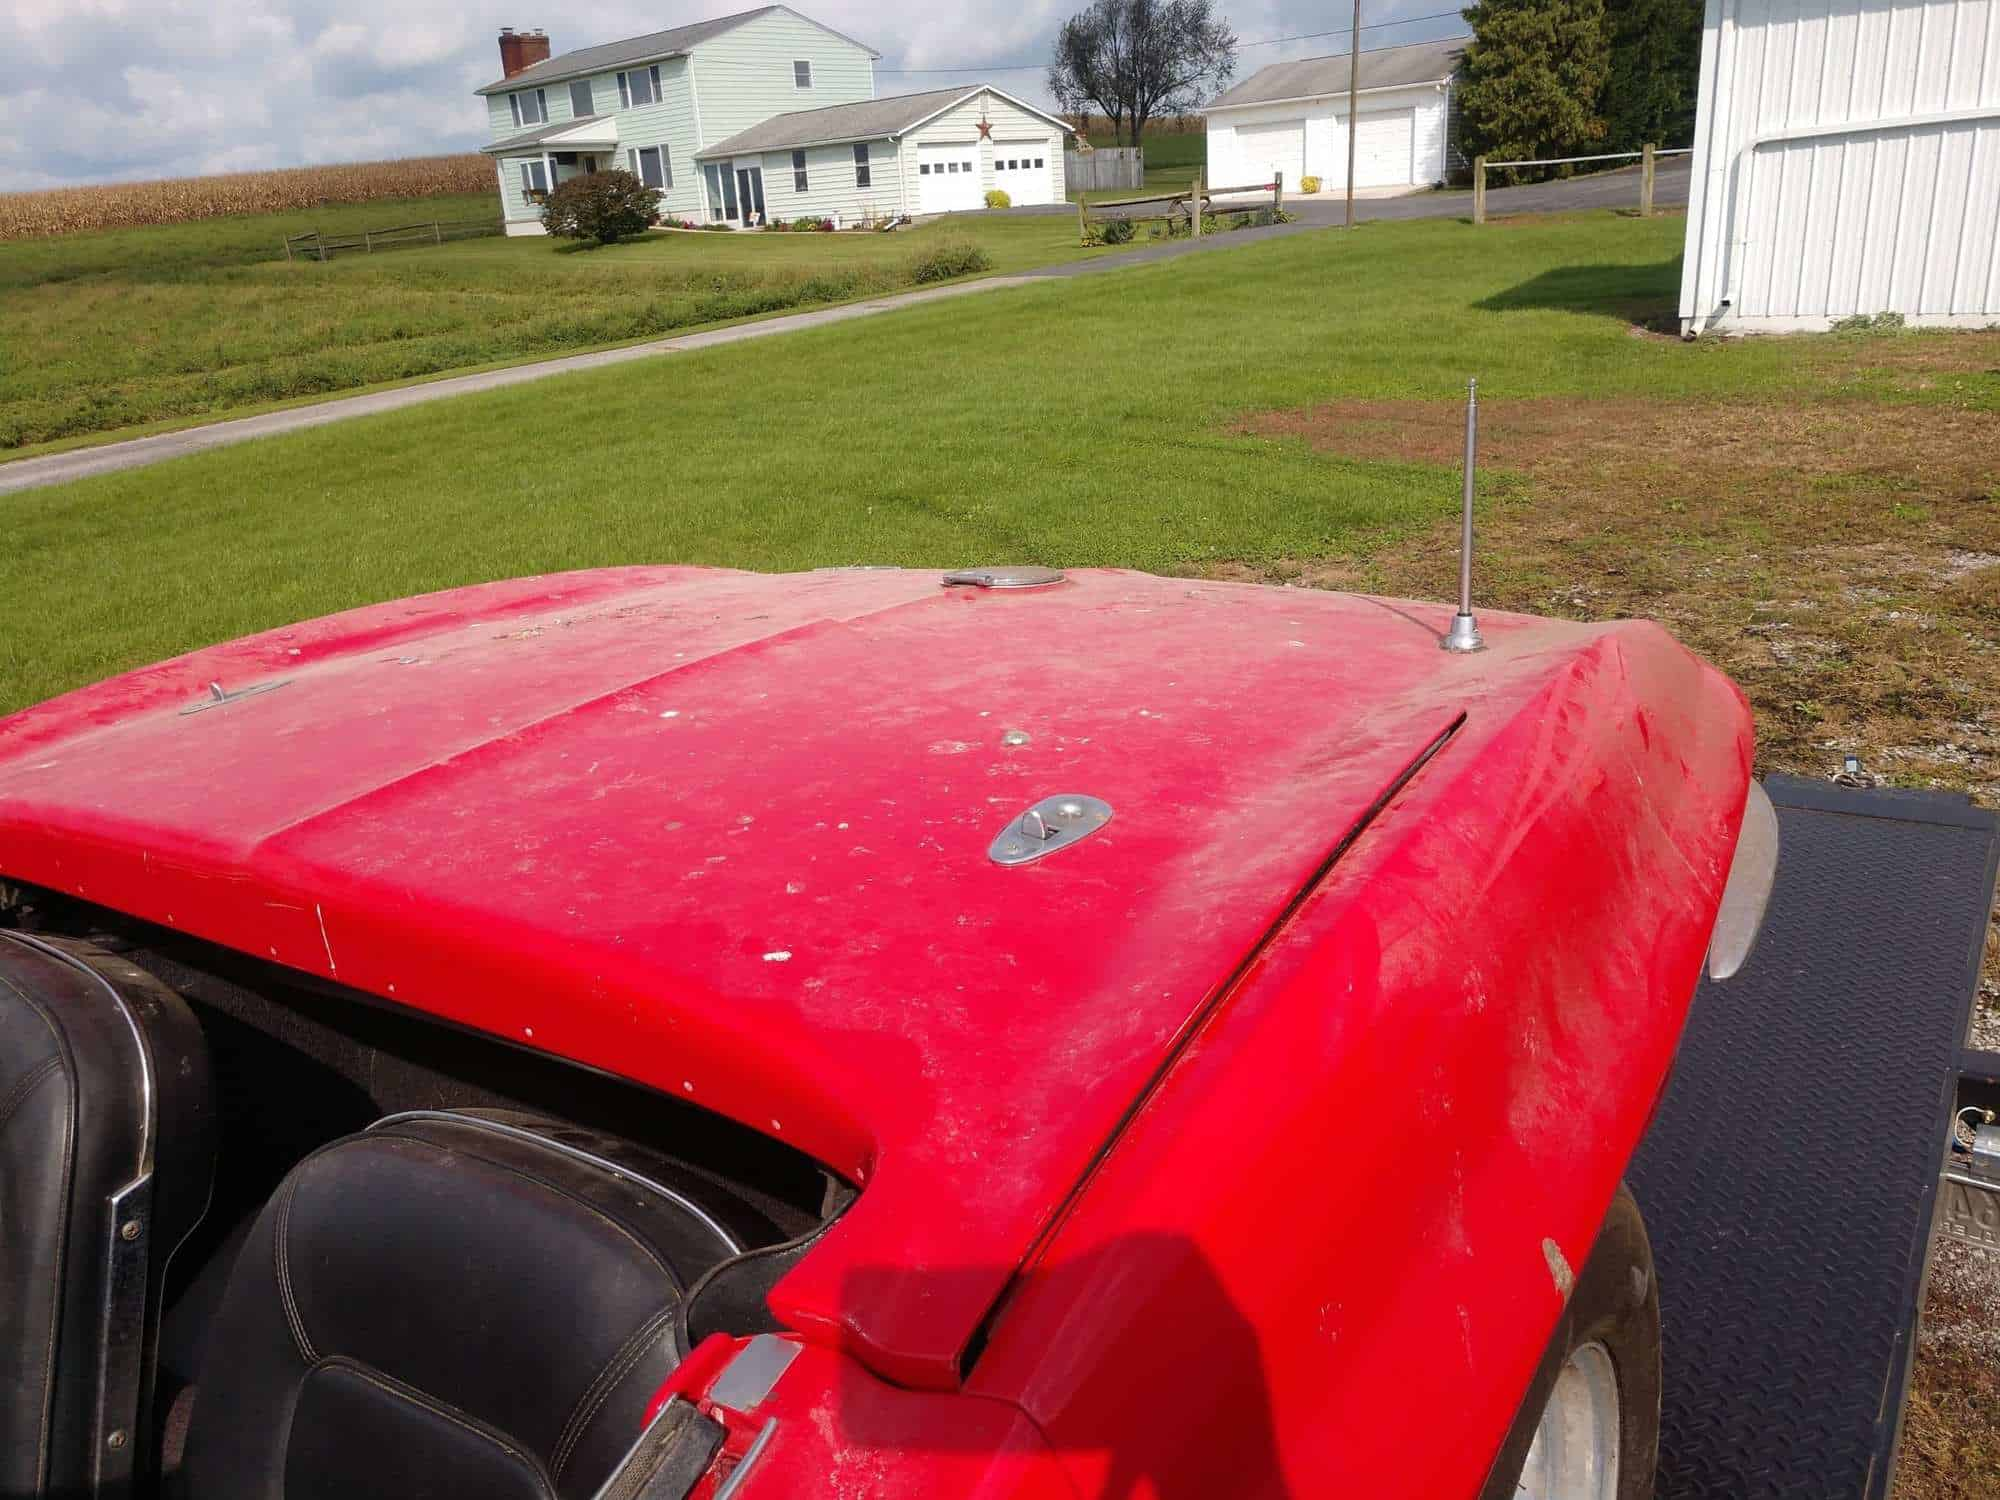 1966 Red Corvette Convertible Four Speed For Sale